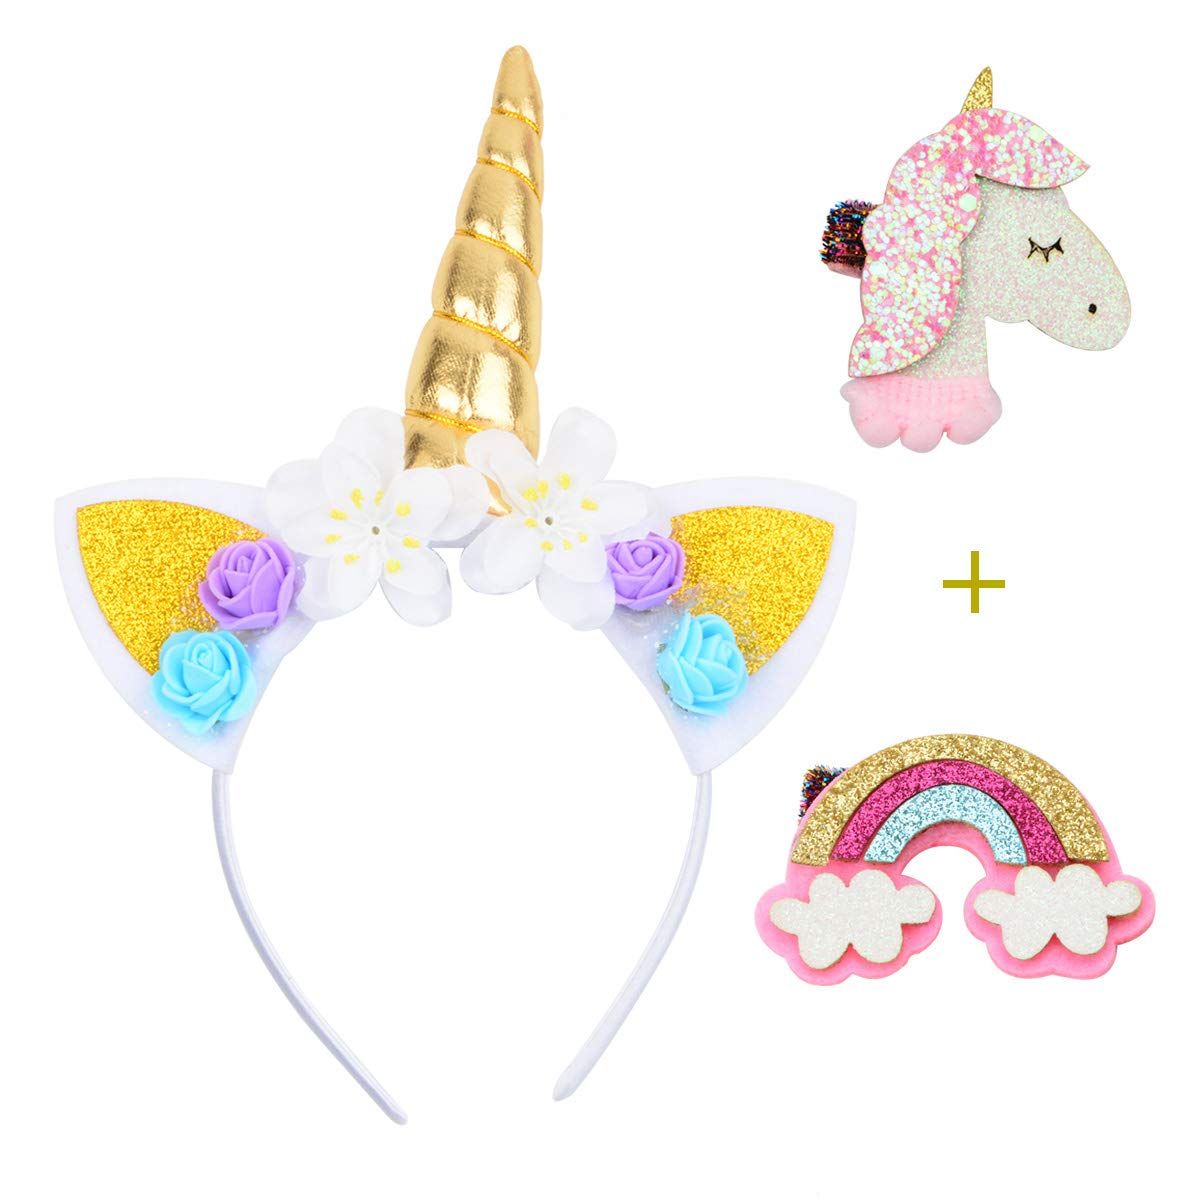 **** BRAND NEW UNICORN HEADBAND HAIRBAND KIDS ADULTS FREE P/&P ****